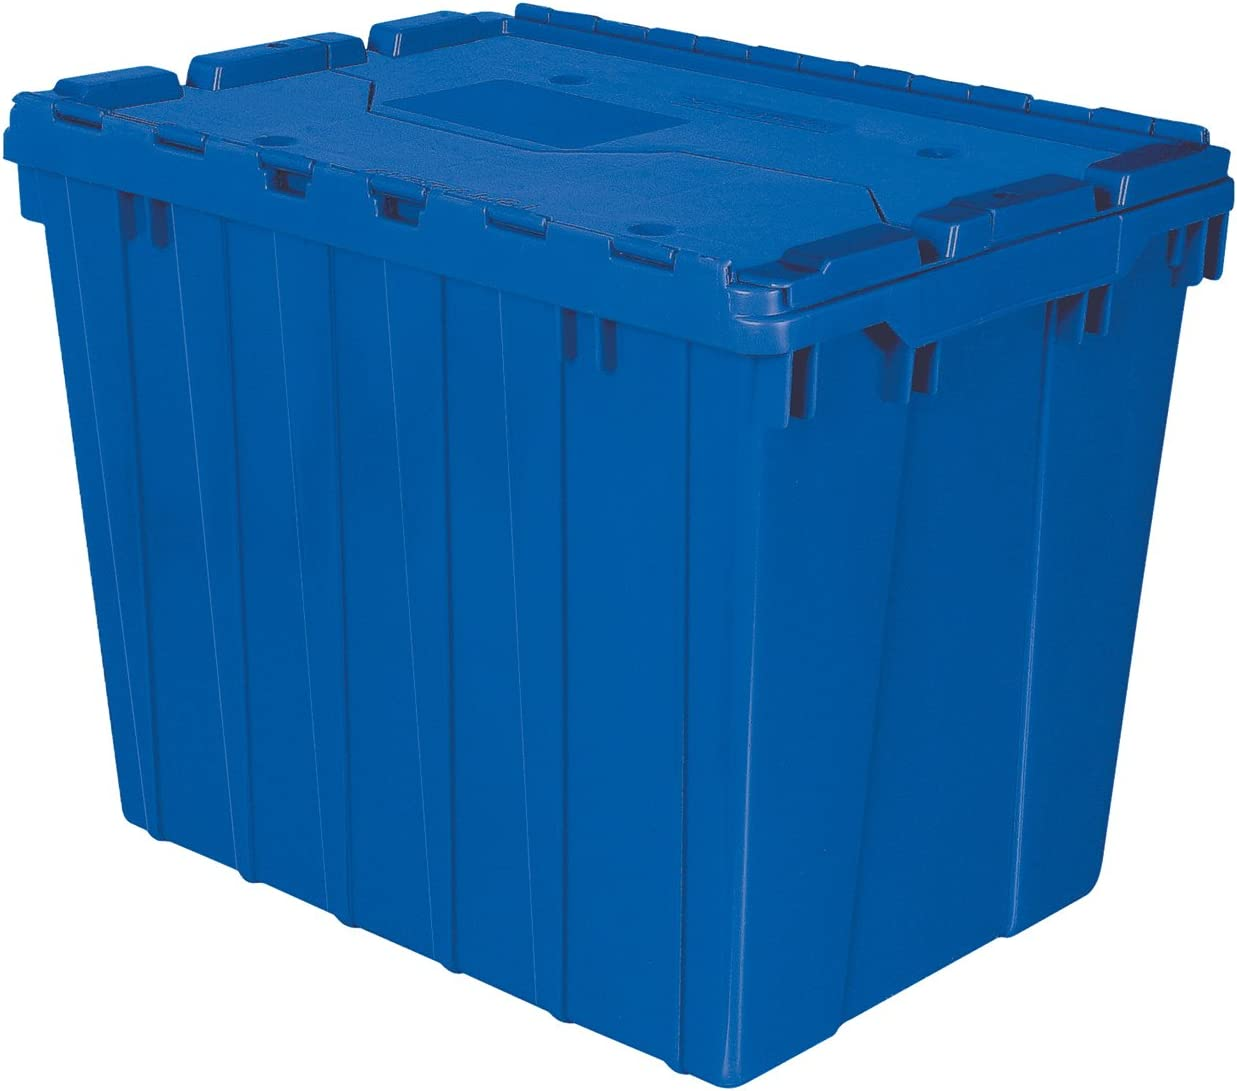 Akro-Mils 39170 Industrial Plastic Storage Tote with Hinged Attached Lid, 21-Inch L by 15-Inch W by 17-Inch H , Blue, 3-Pack